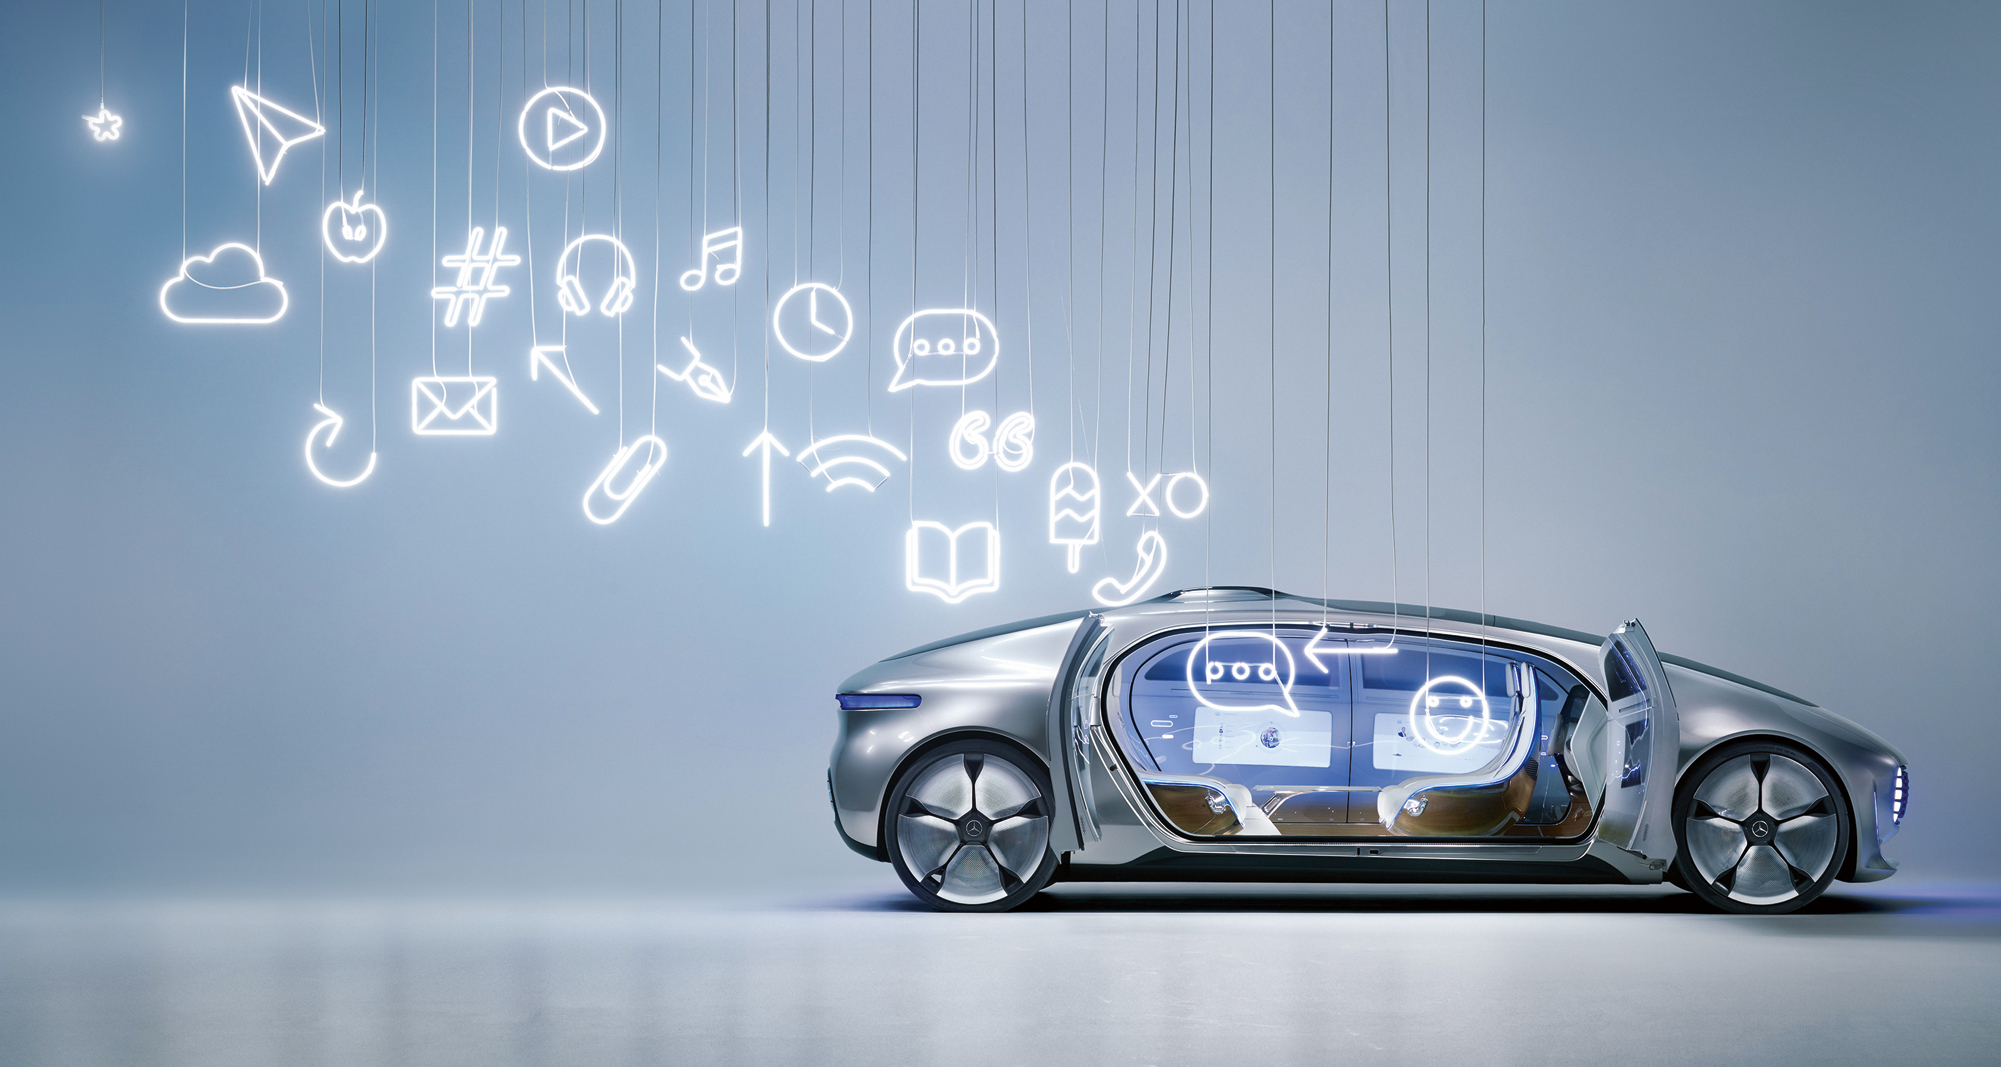 Daimler: Our developers know about the advantages of Open Source Software